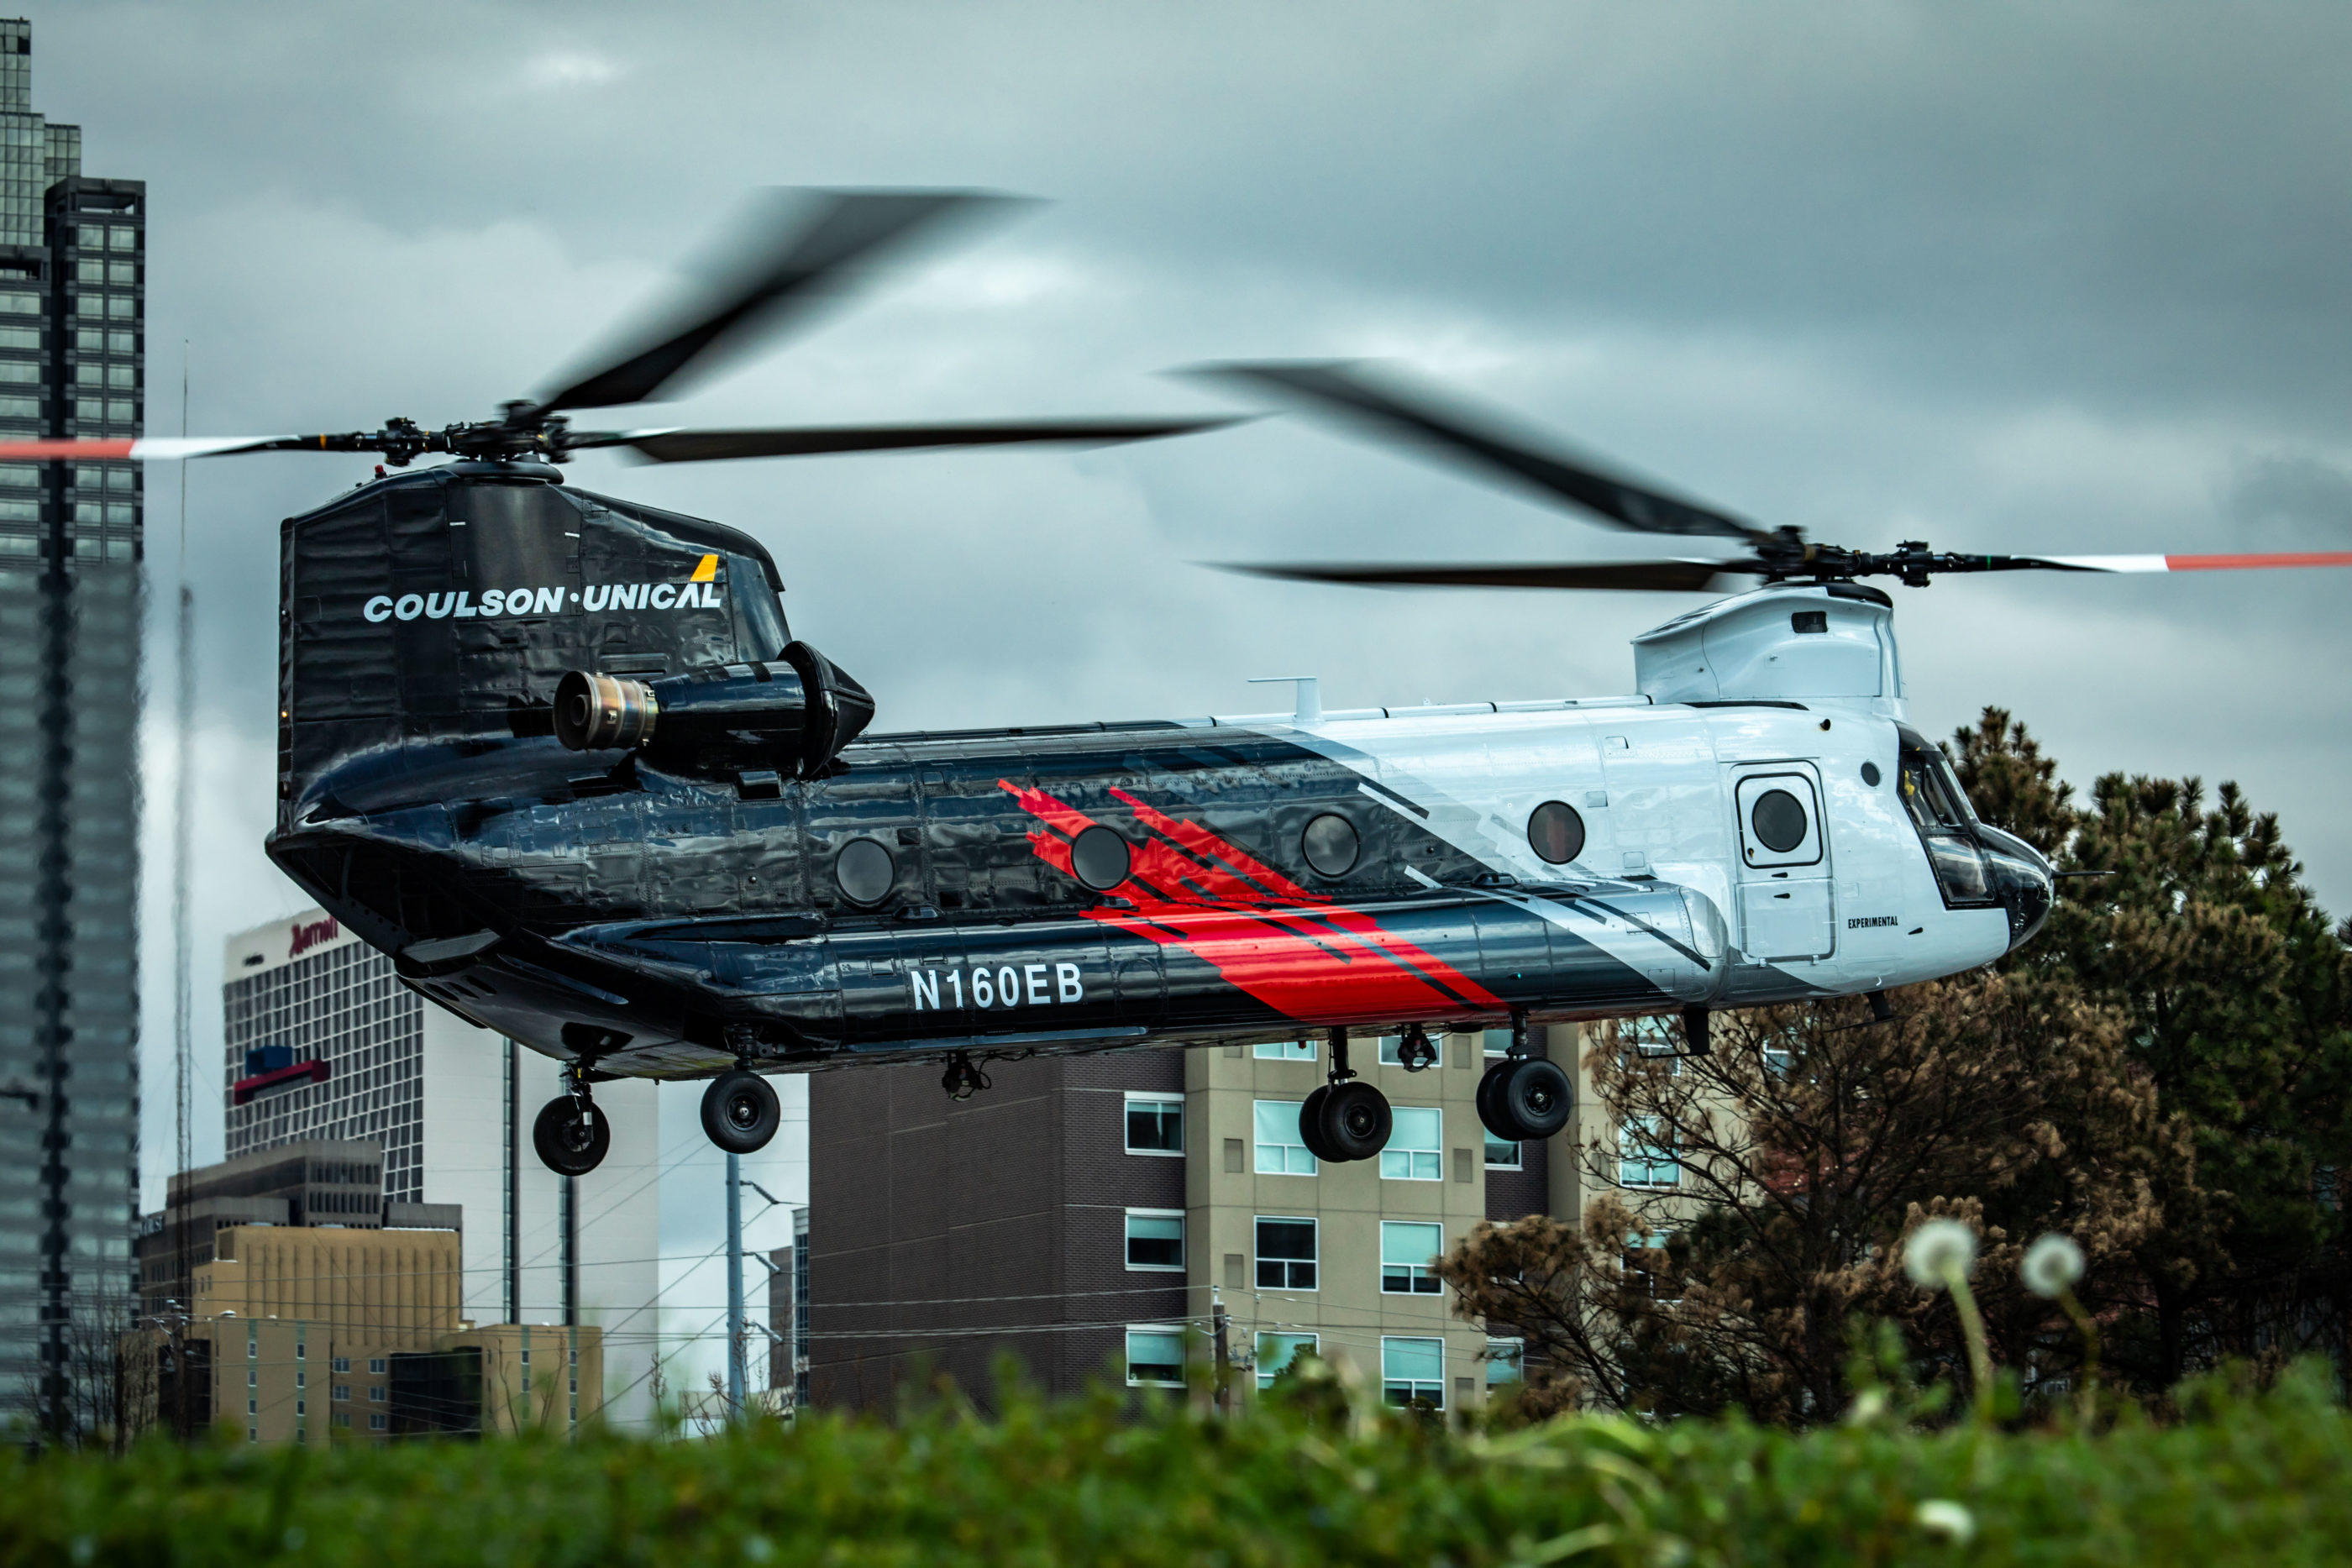 Coulson-Unical's CU-47 flying into HAI Heli-Expo 2019 in Atlanta, Georgia, snapped by Dirk Collins.